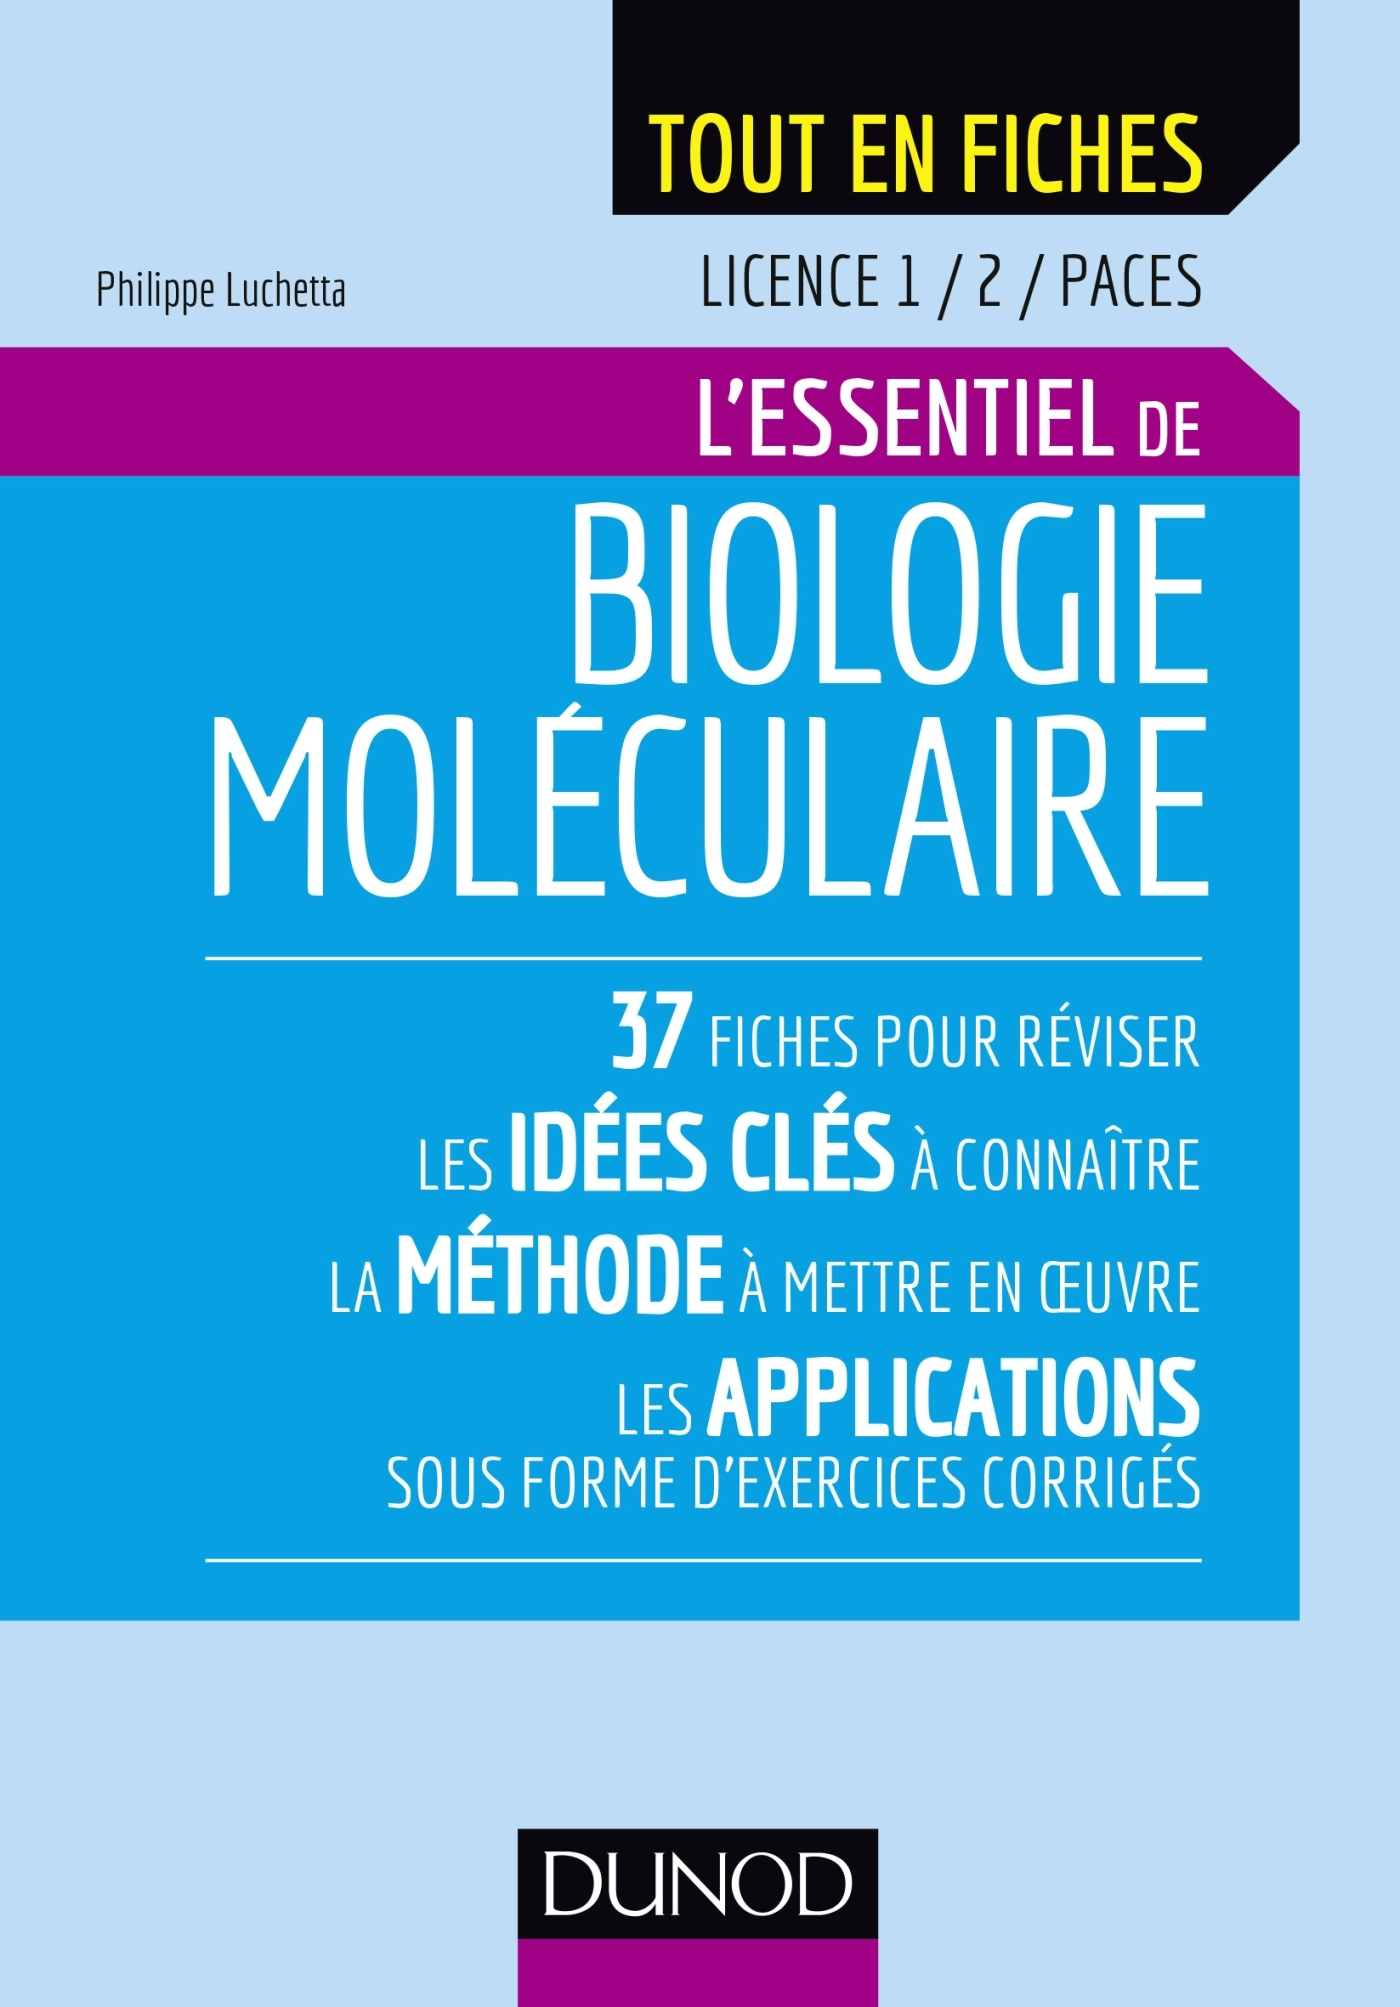 BIOLOGIE MOLECULAIRE - LICENCE 1 / 2 / PACES